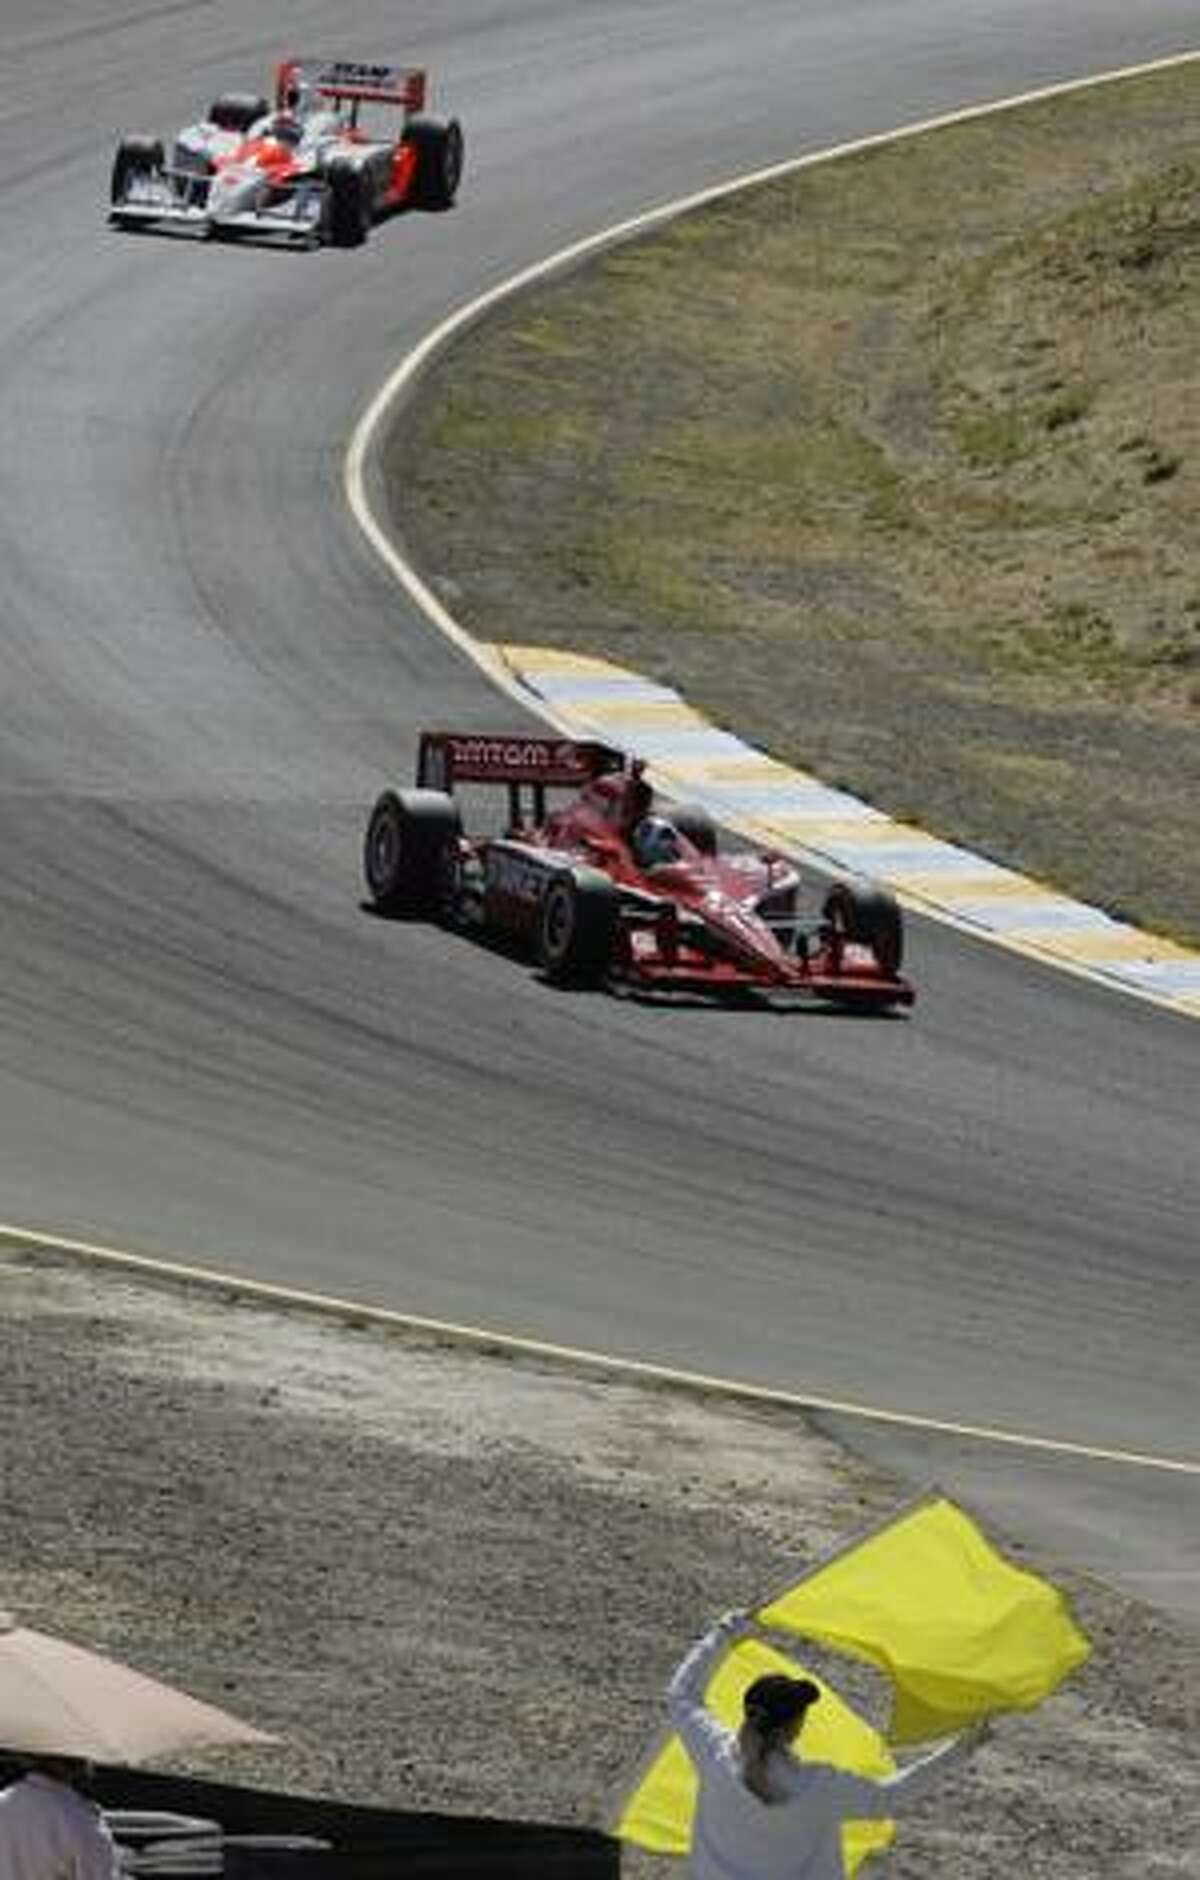 AP Dario Franchitti, of Scotland, leads Ryan Briscoe, of Australia, under a yellow flag during the IndyCar Series' Indy Grand Prix of Sonoma auto race Sunday at Infineon Raceway in Sonoma, Calif.